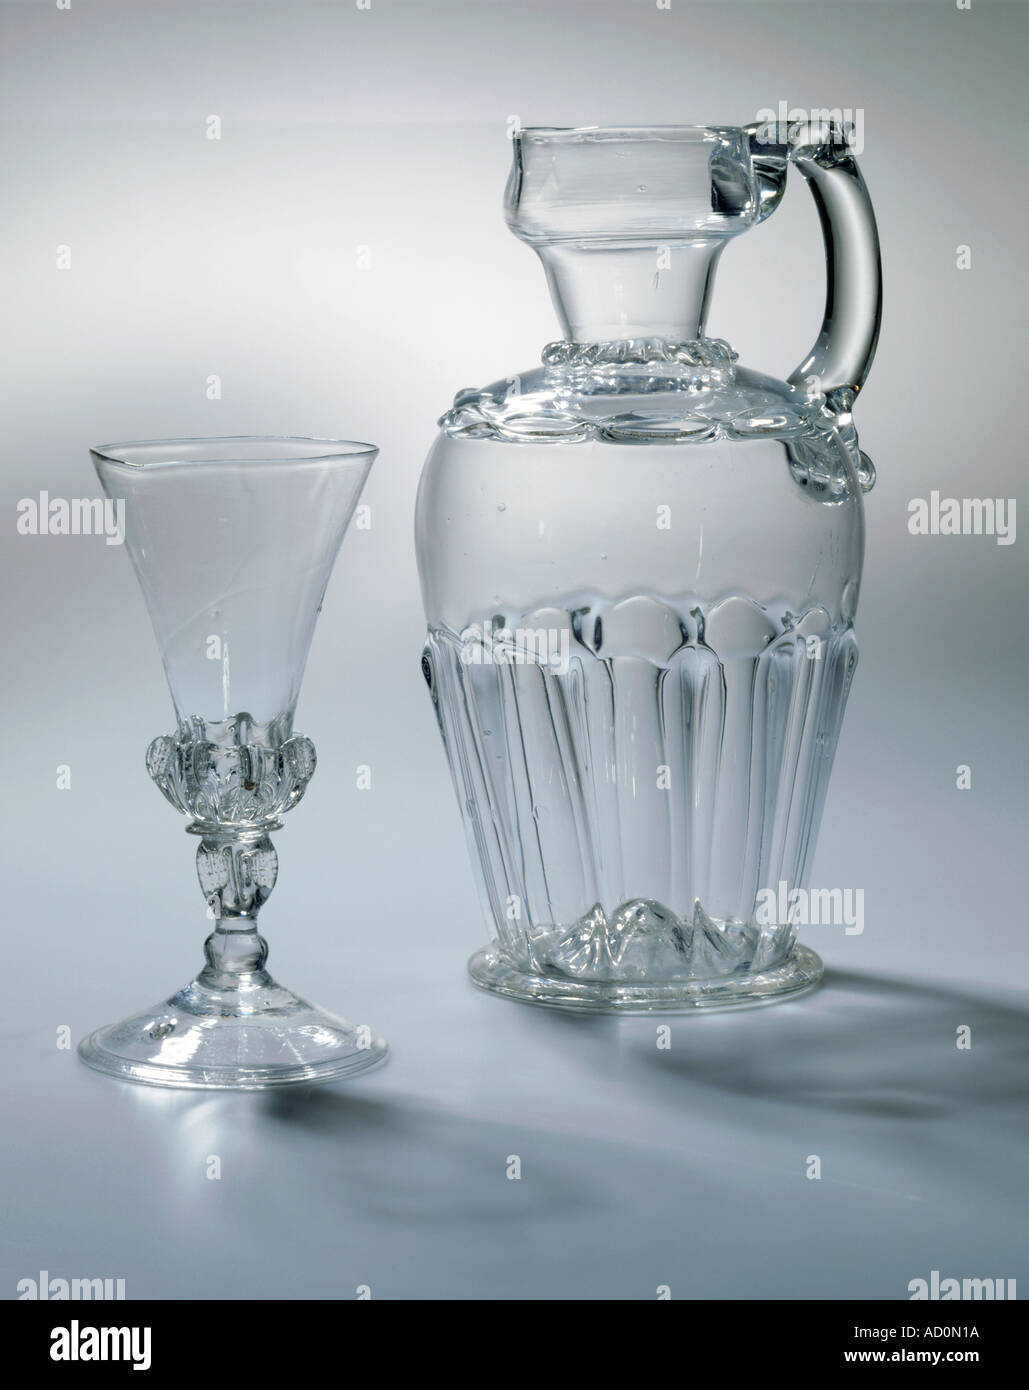 Decanter jug and drinking glass. England, c.1680-90. - Stock Image